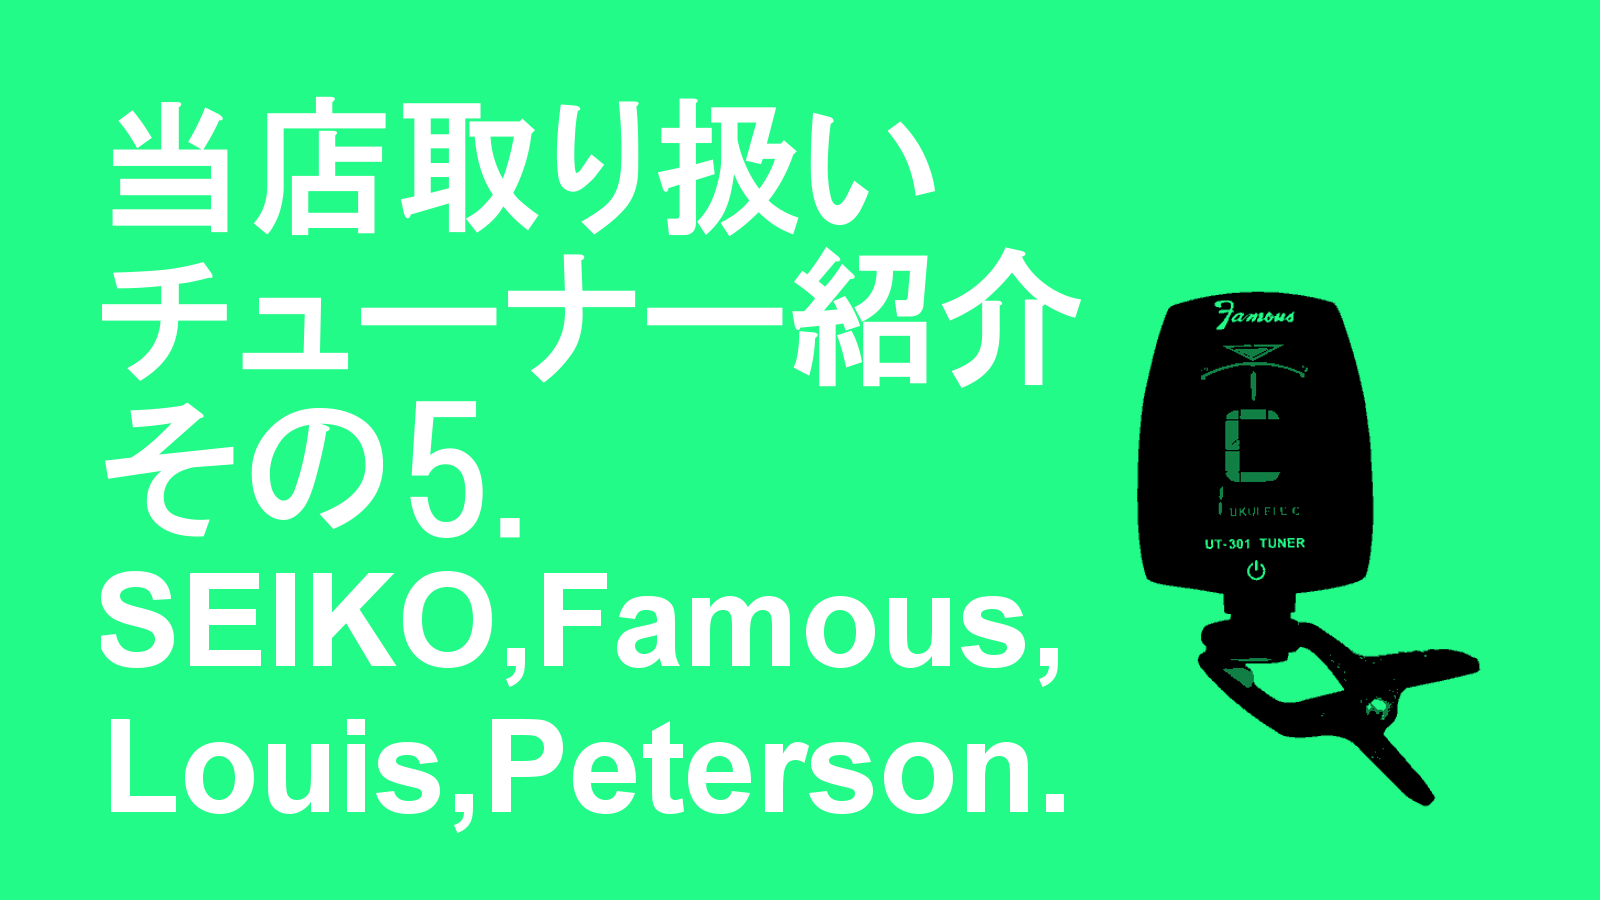 SEIKO・Famous・Louis・Peterson紹介バナー